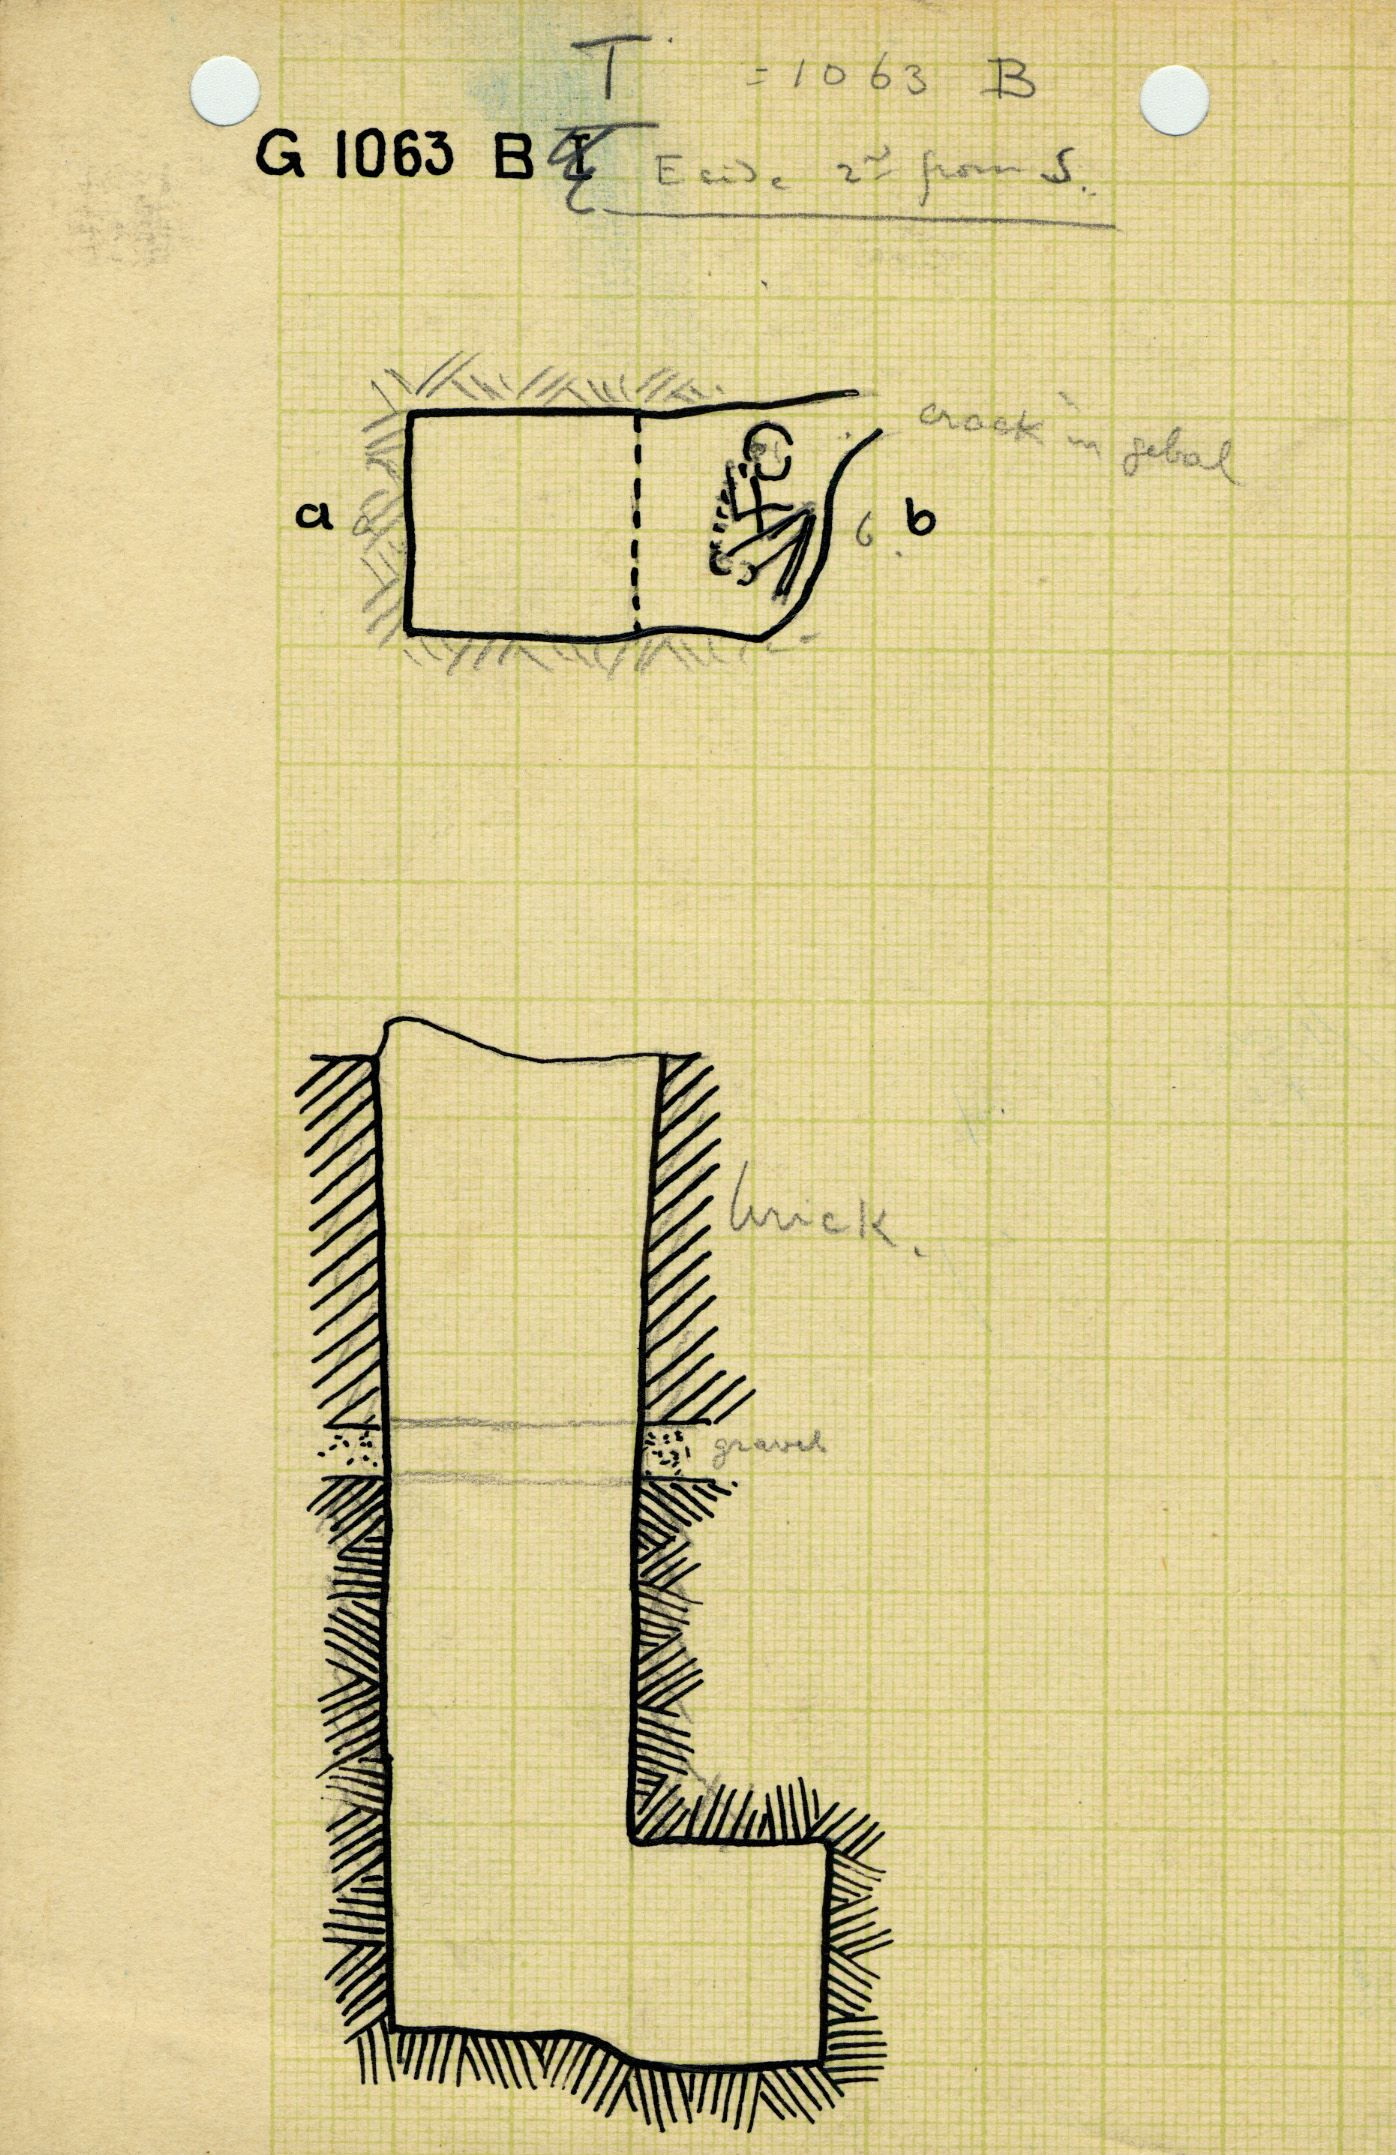 Maps and plans: G 1063, Shaft B